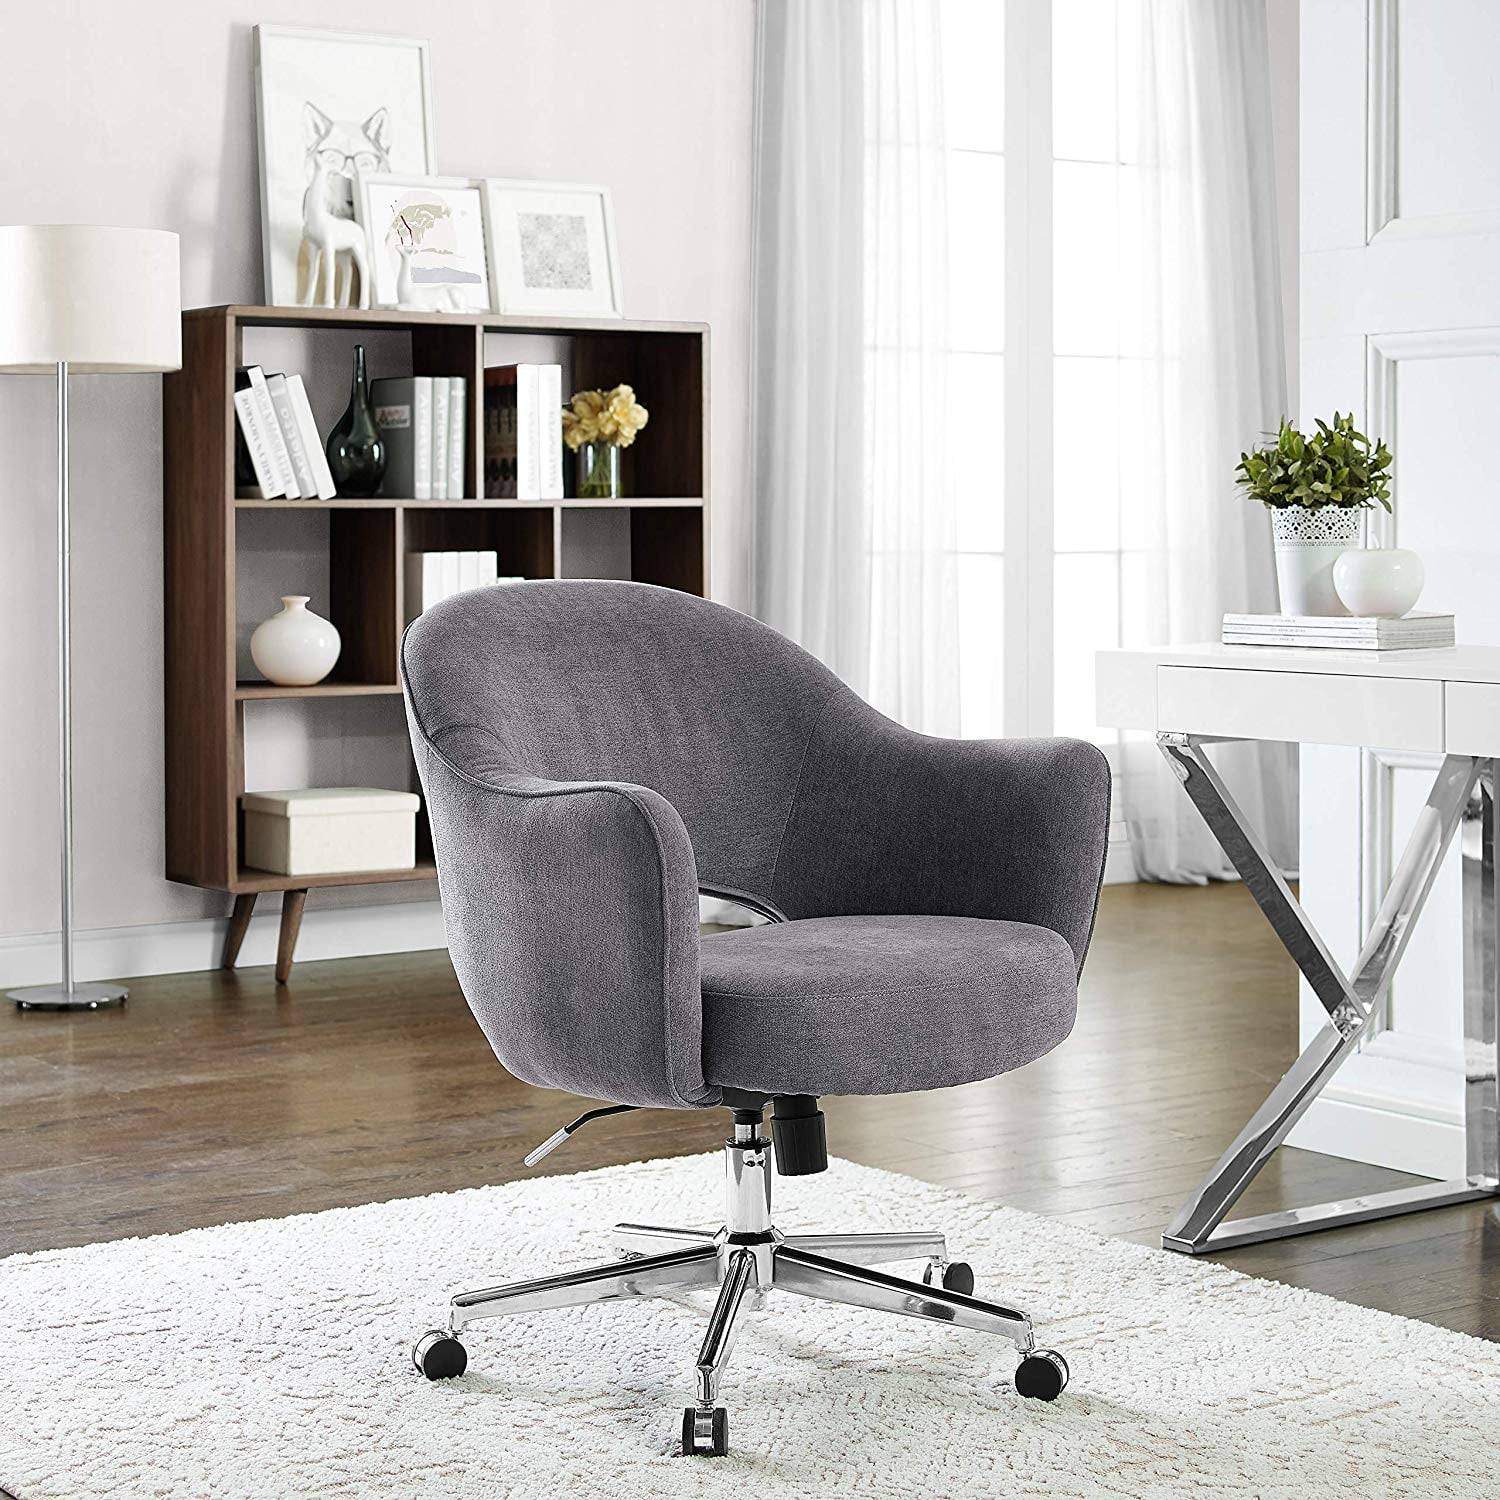 Serta Valetta Dovetail Home Office Chair 21 Stylish Office Furniture Pieces That Will Make Working From Home So Much Better Popsugar Home Photo 6